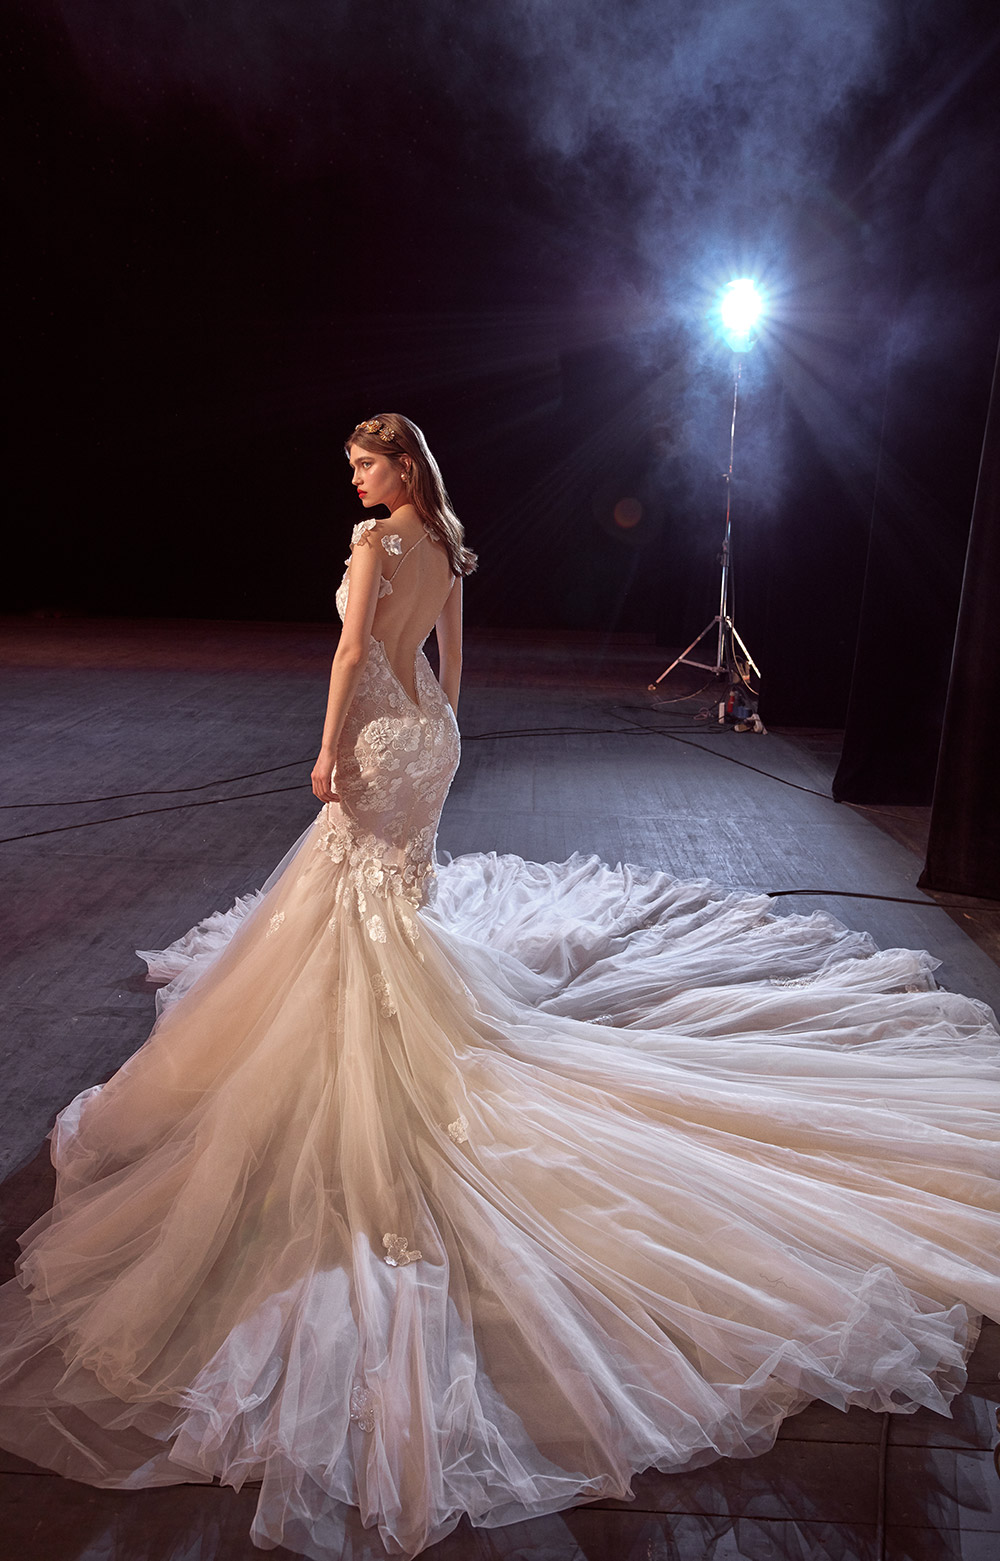 Michelle - Galia Lahav Couture Spring 2020 Collection. www.theweddingnotebook.com